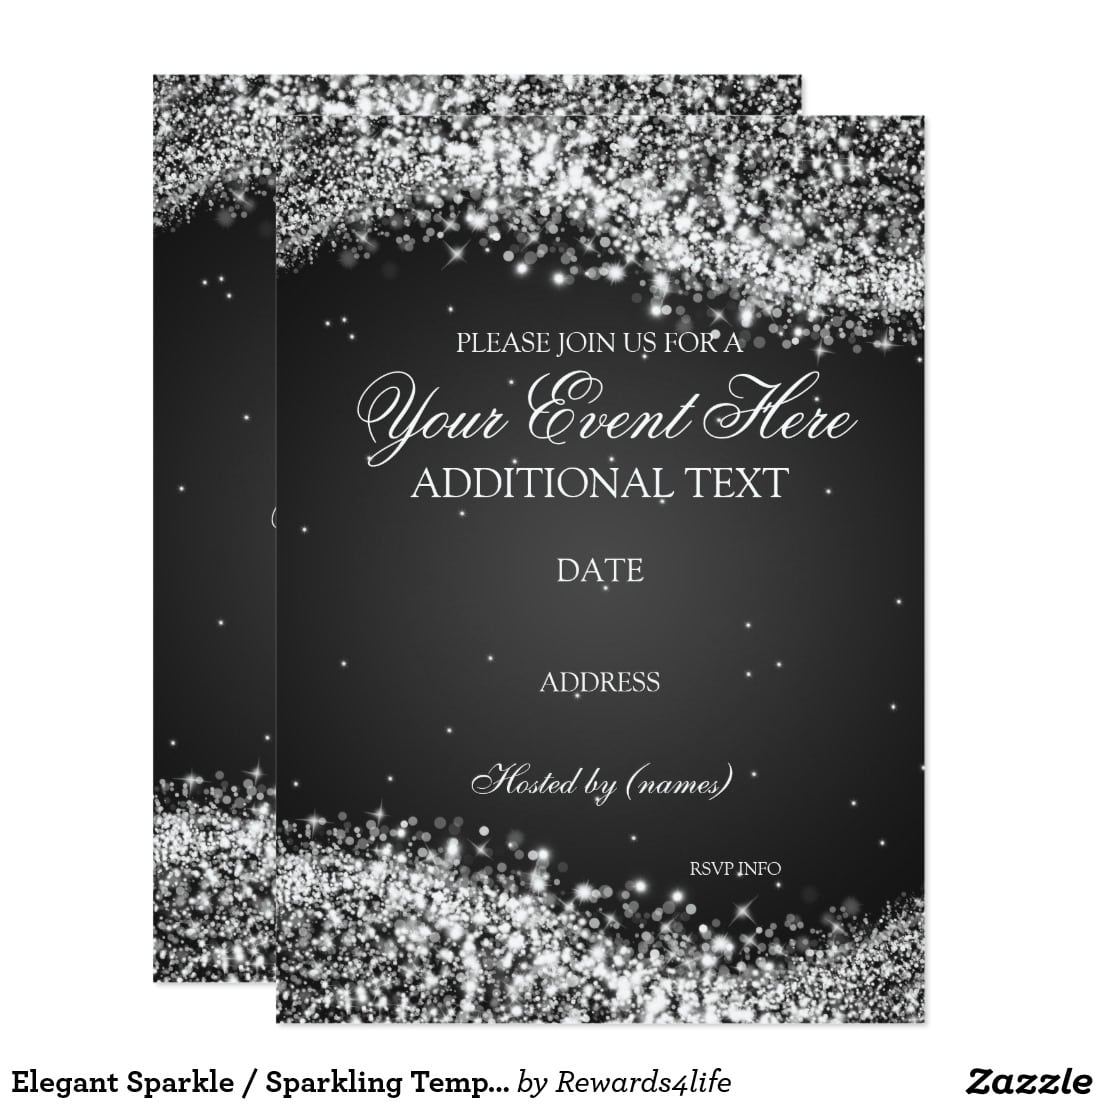 Elegant Sparkle   Sparkling Template Party Card